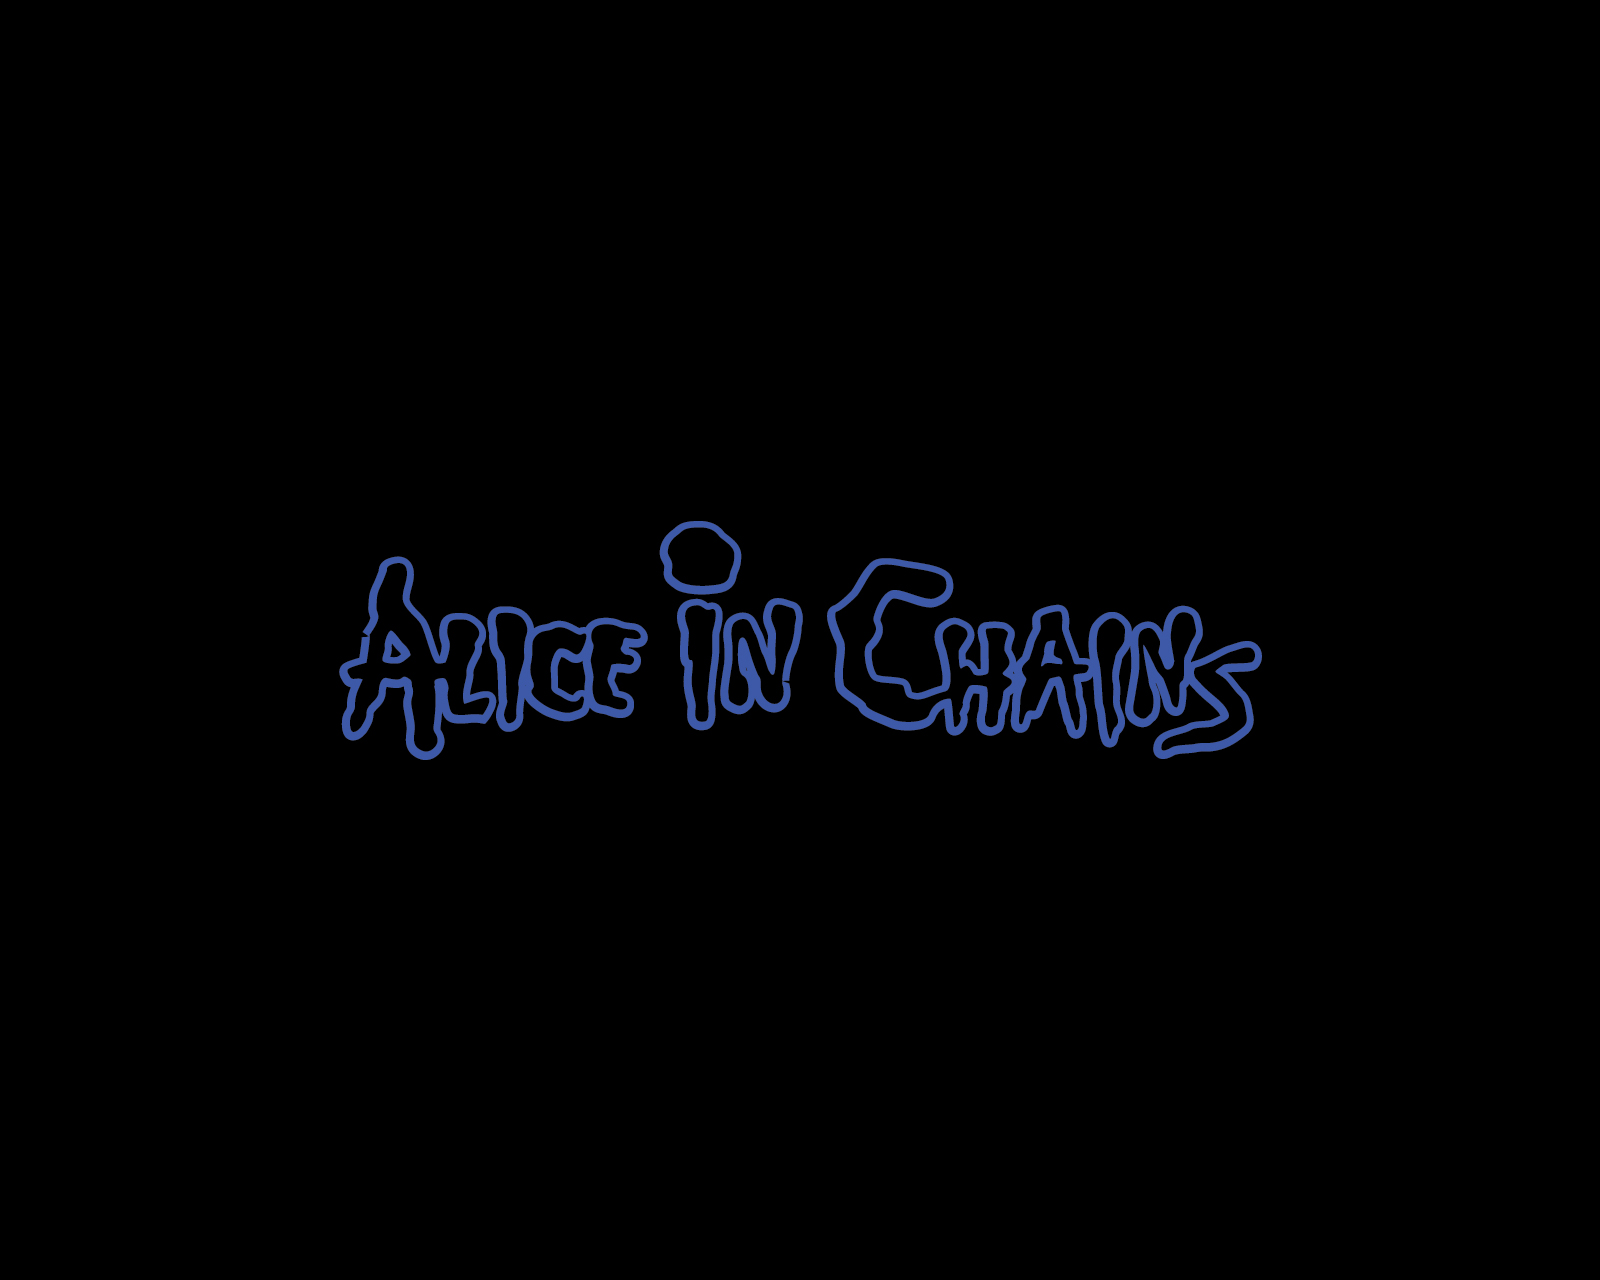 13 alice in chains hd wallpapers backgrounds wallpaper